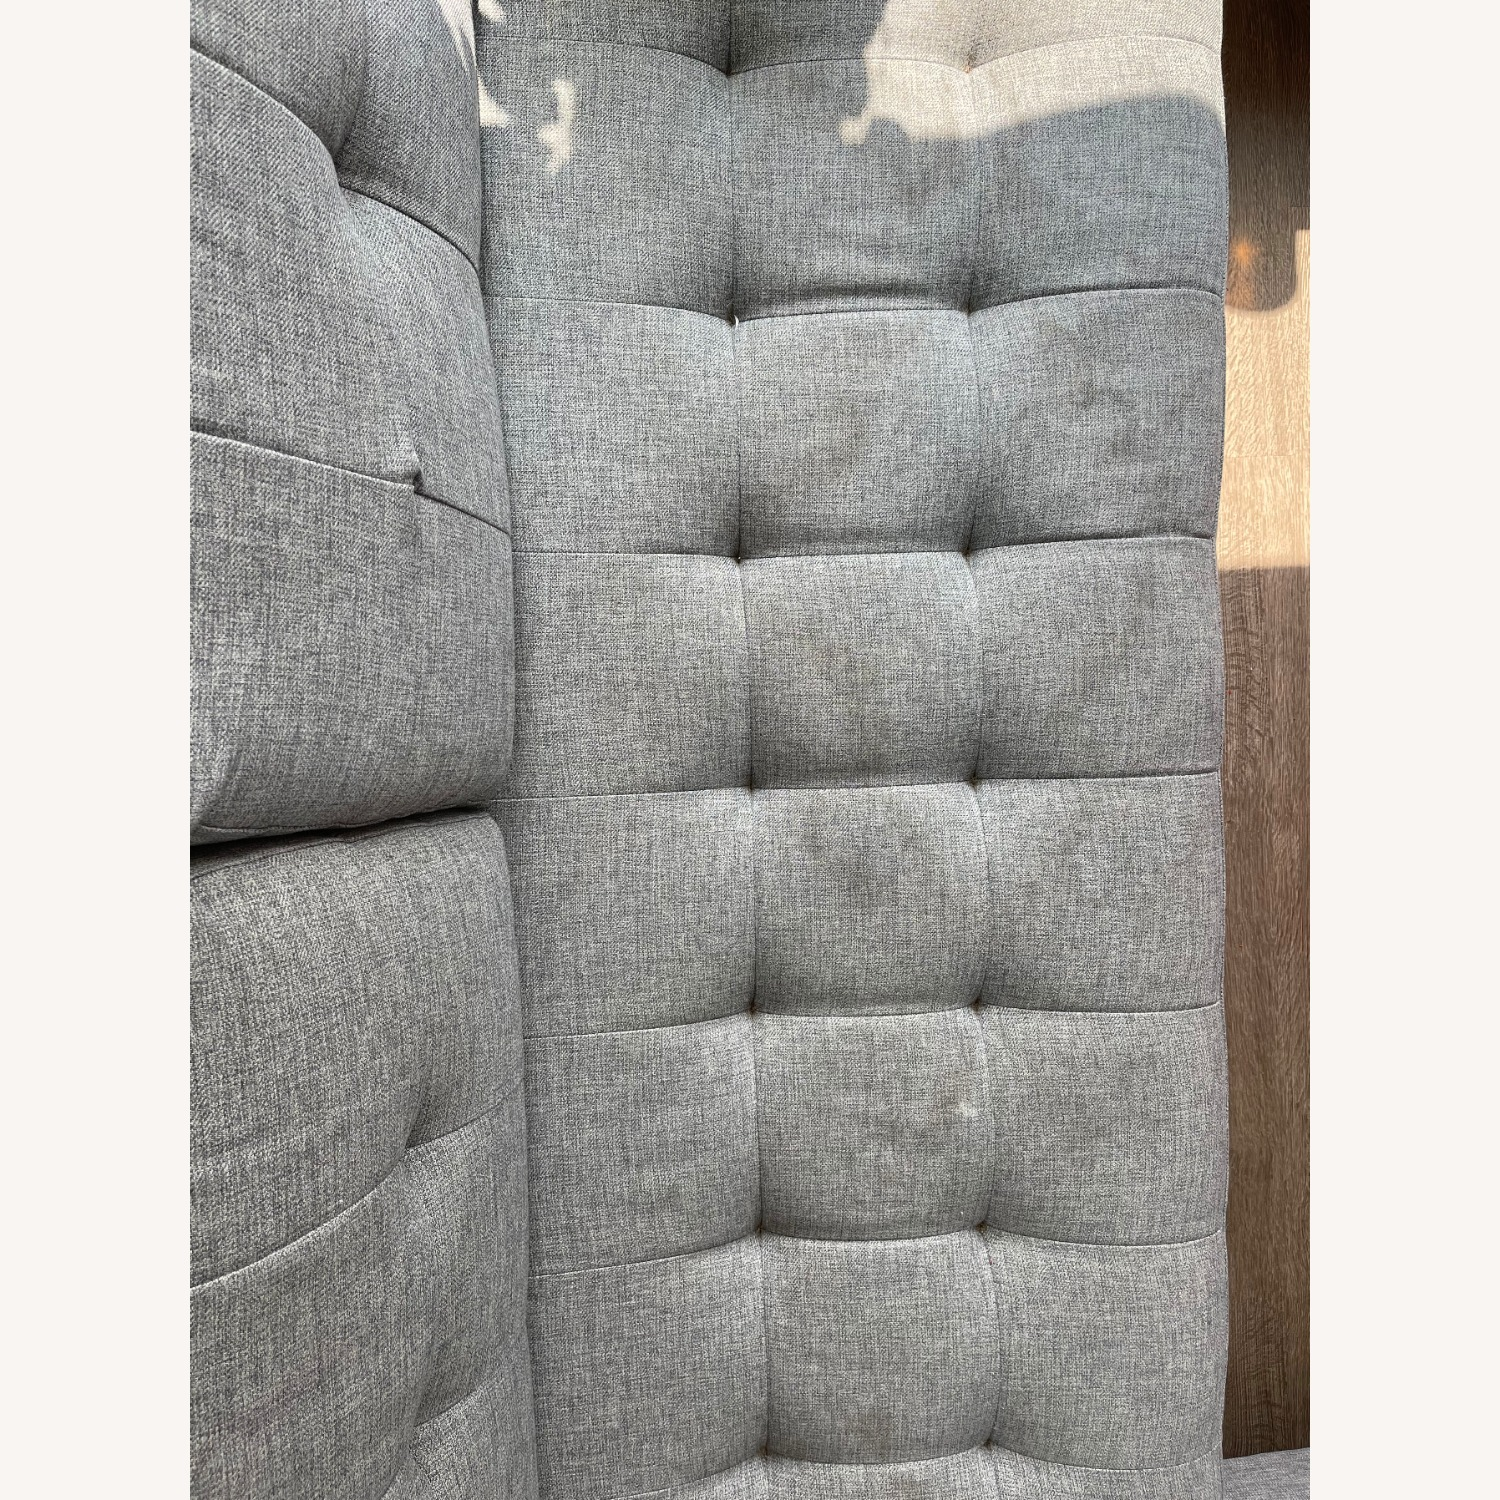 CB2 Ditto II Tufted Chaise Sectional Sofa Grey - image-4